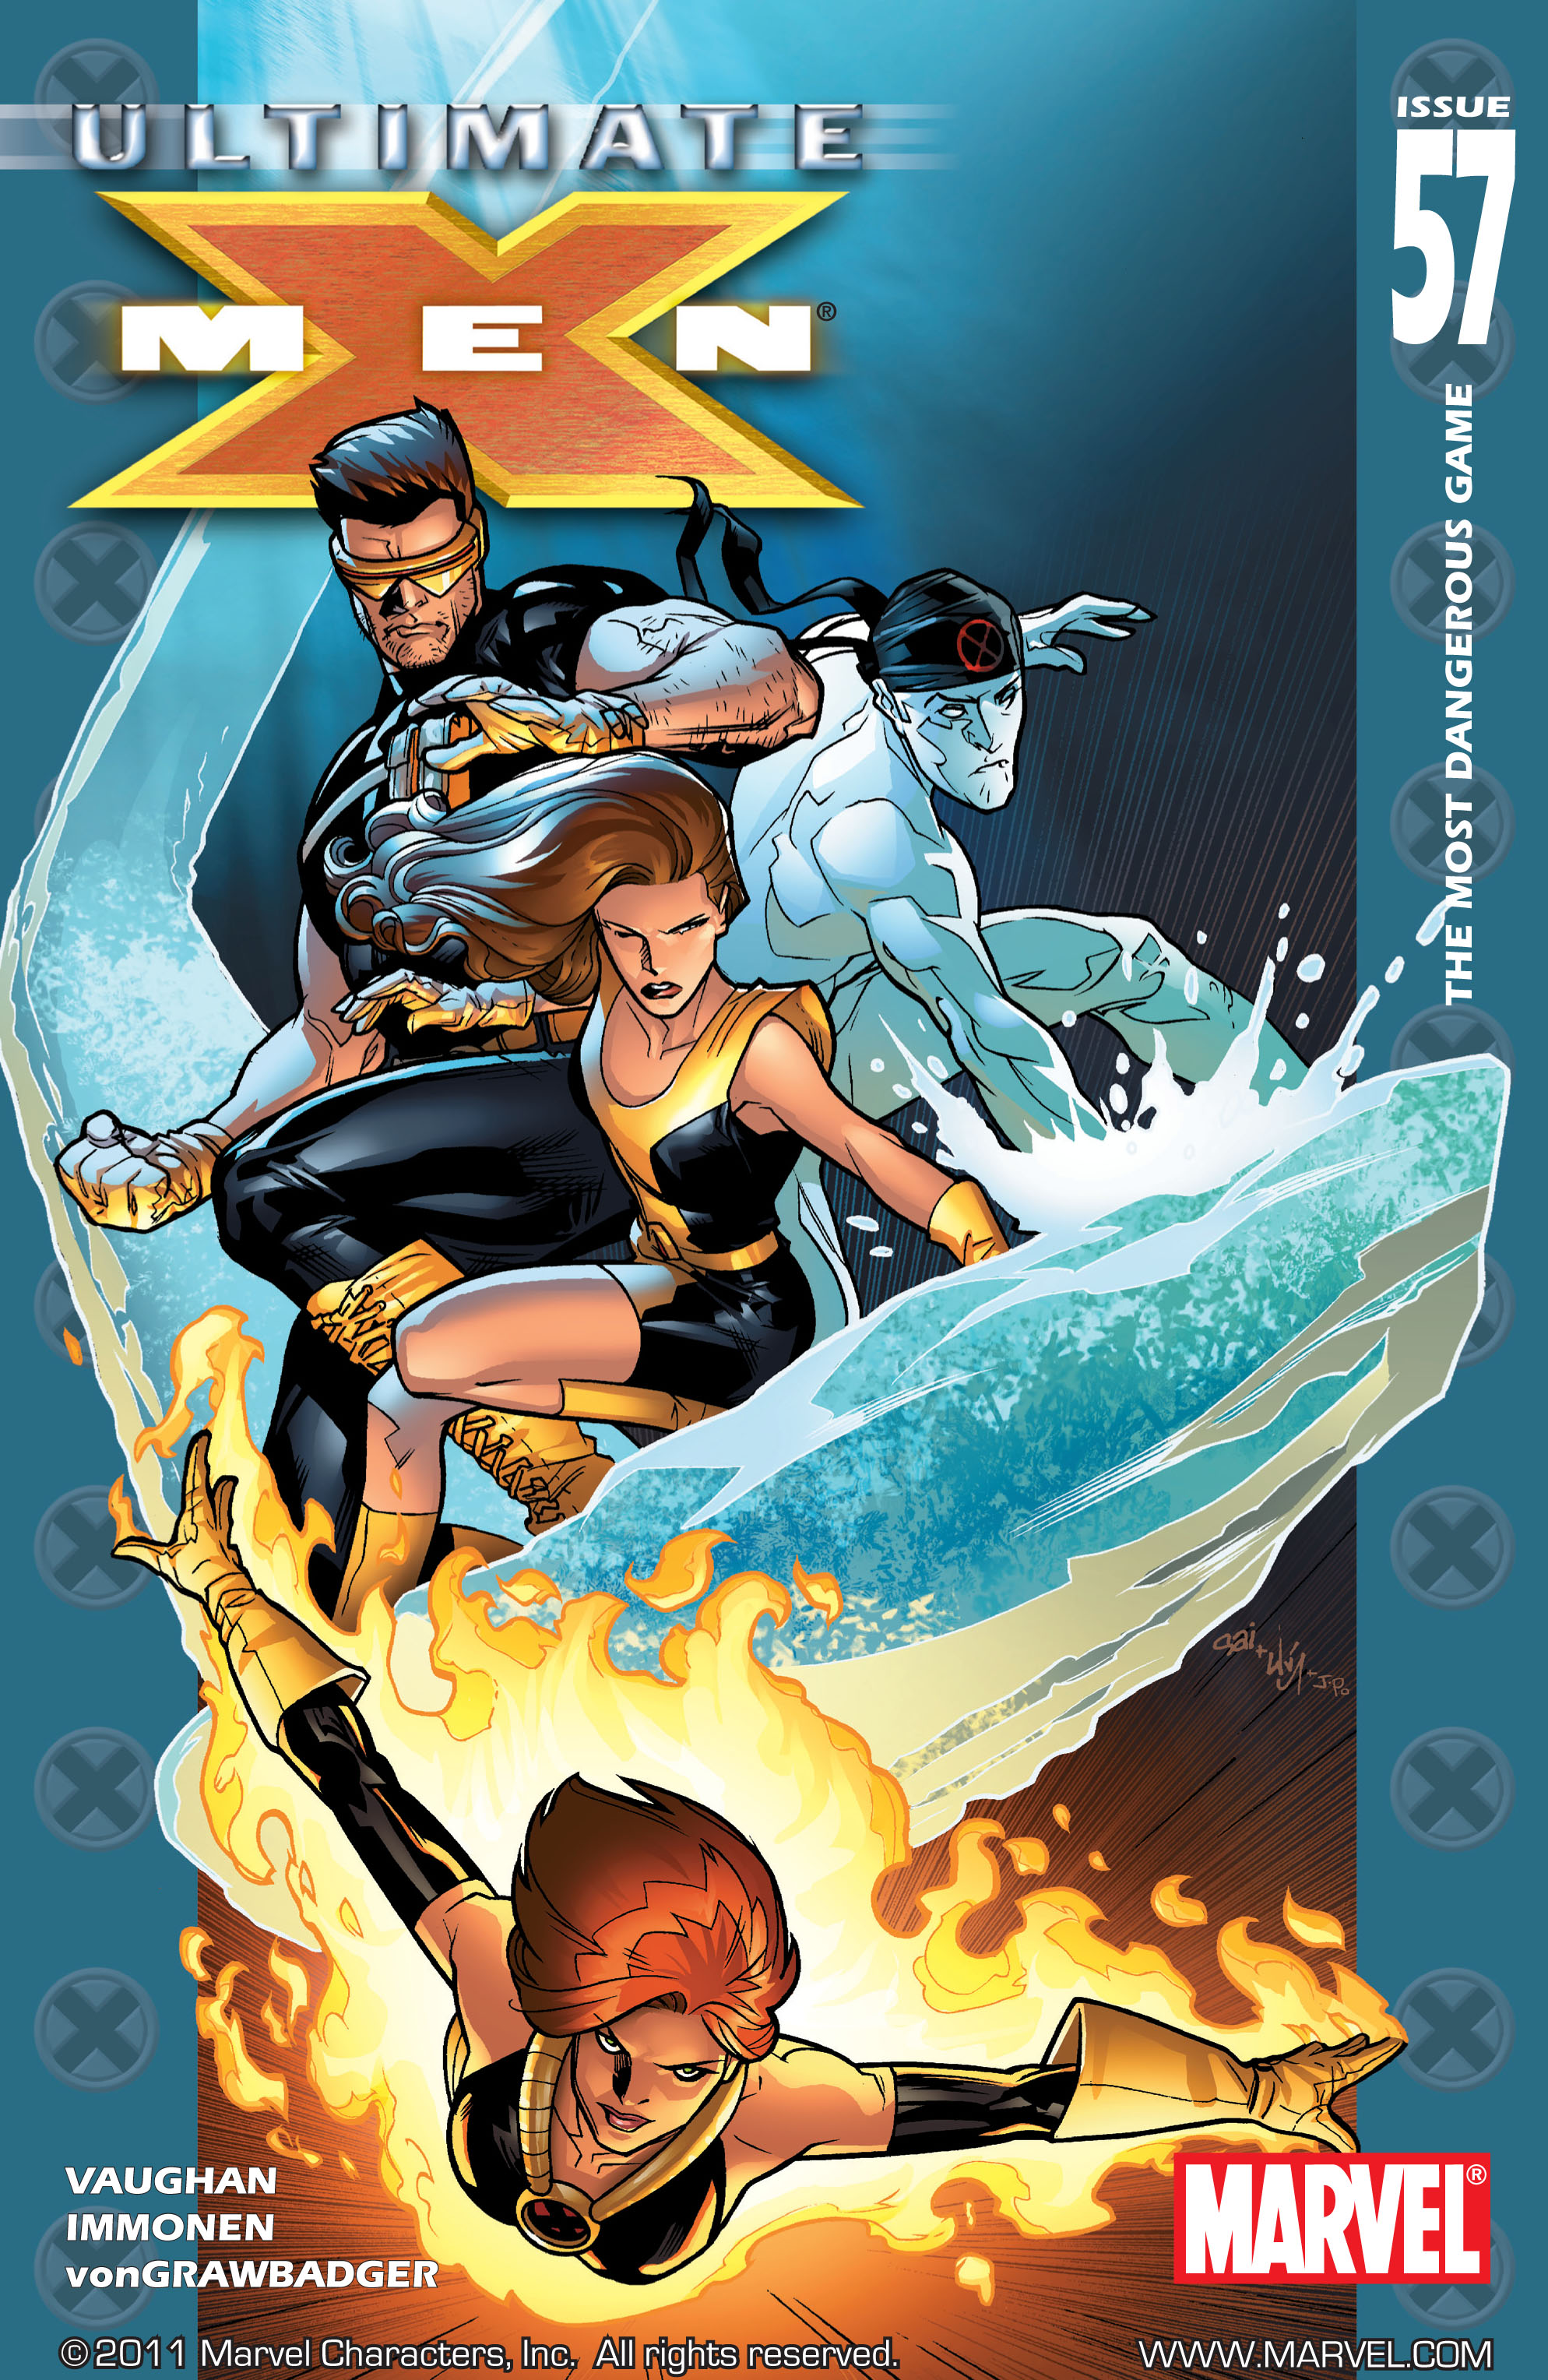 Read online Ultimate X-Men comic -  Issue #57 - 1